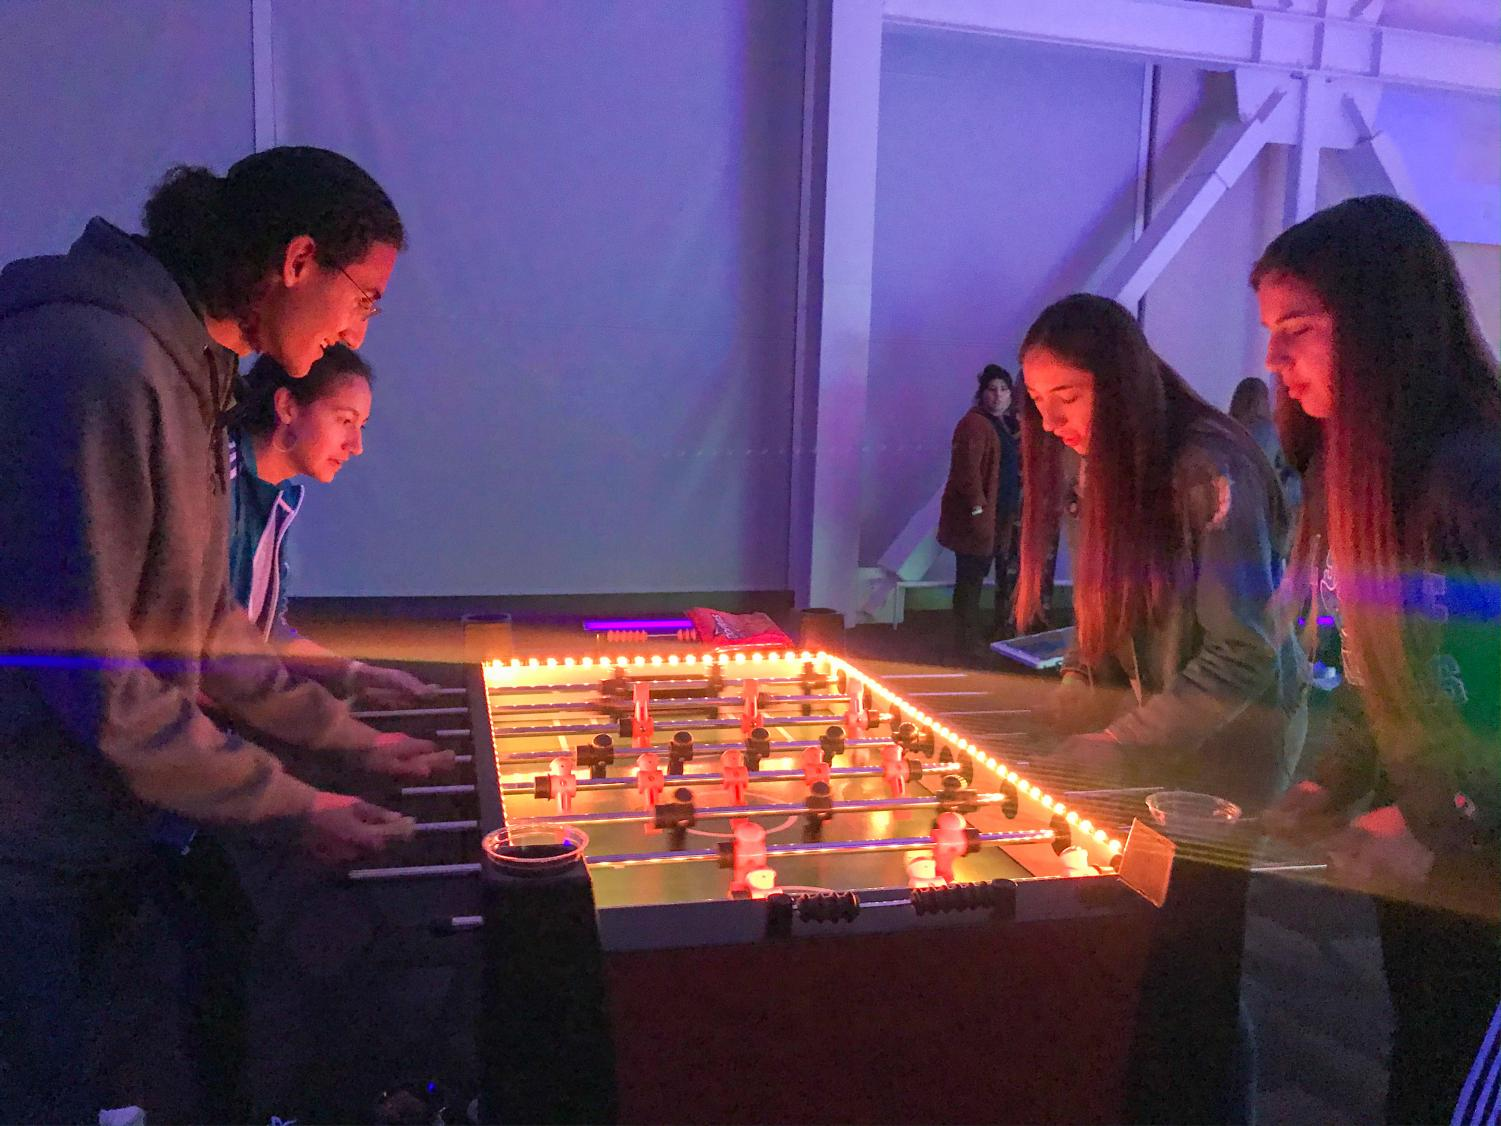 Students go head to head in a game of foosball.